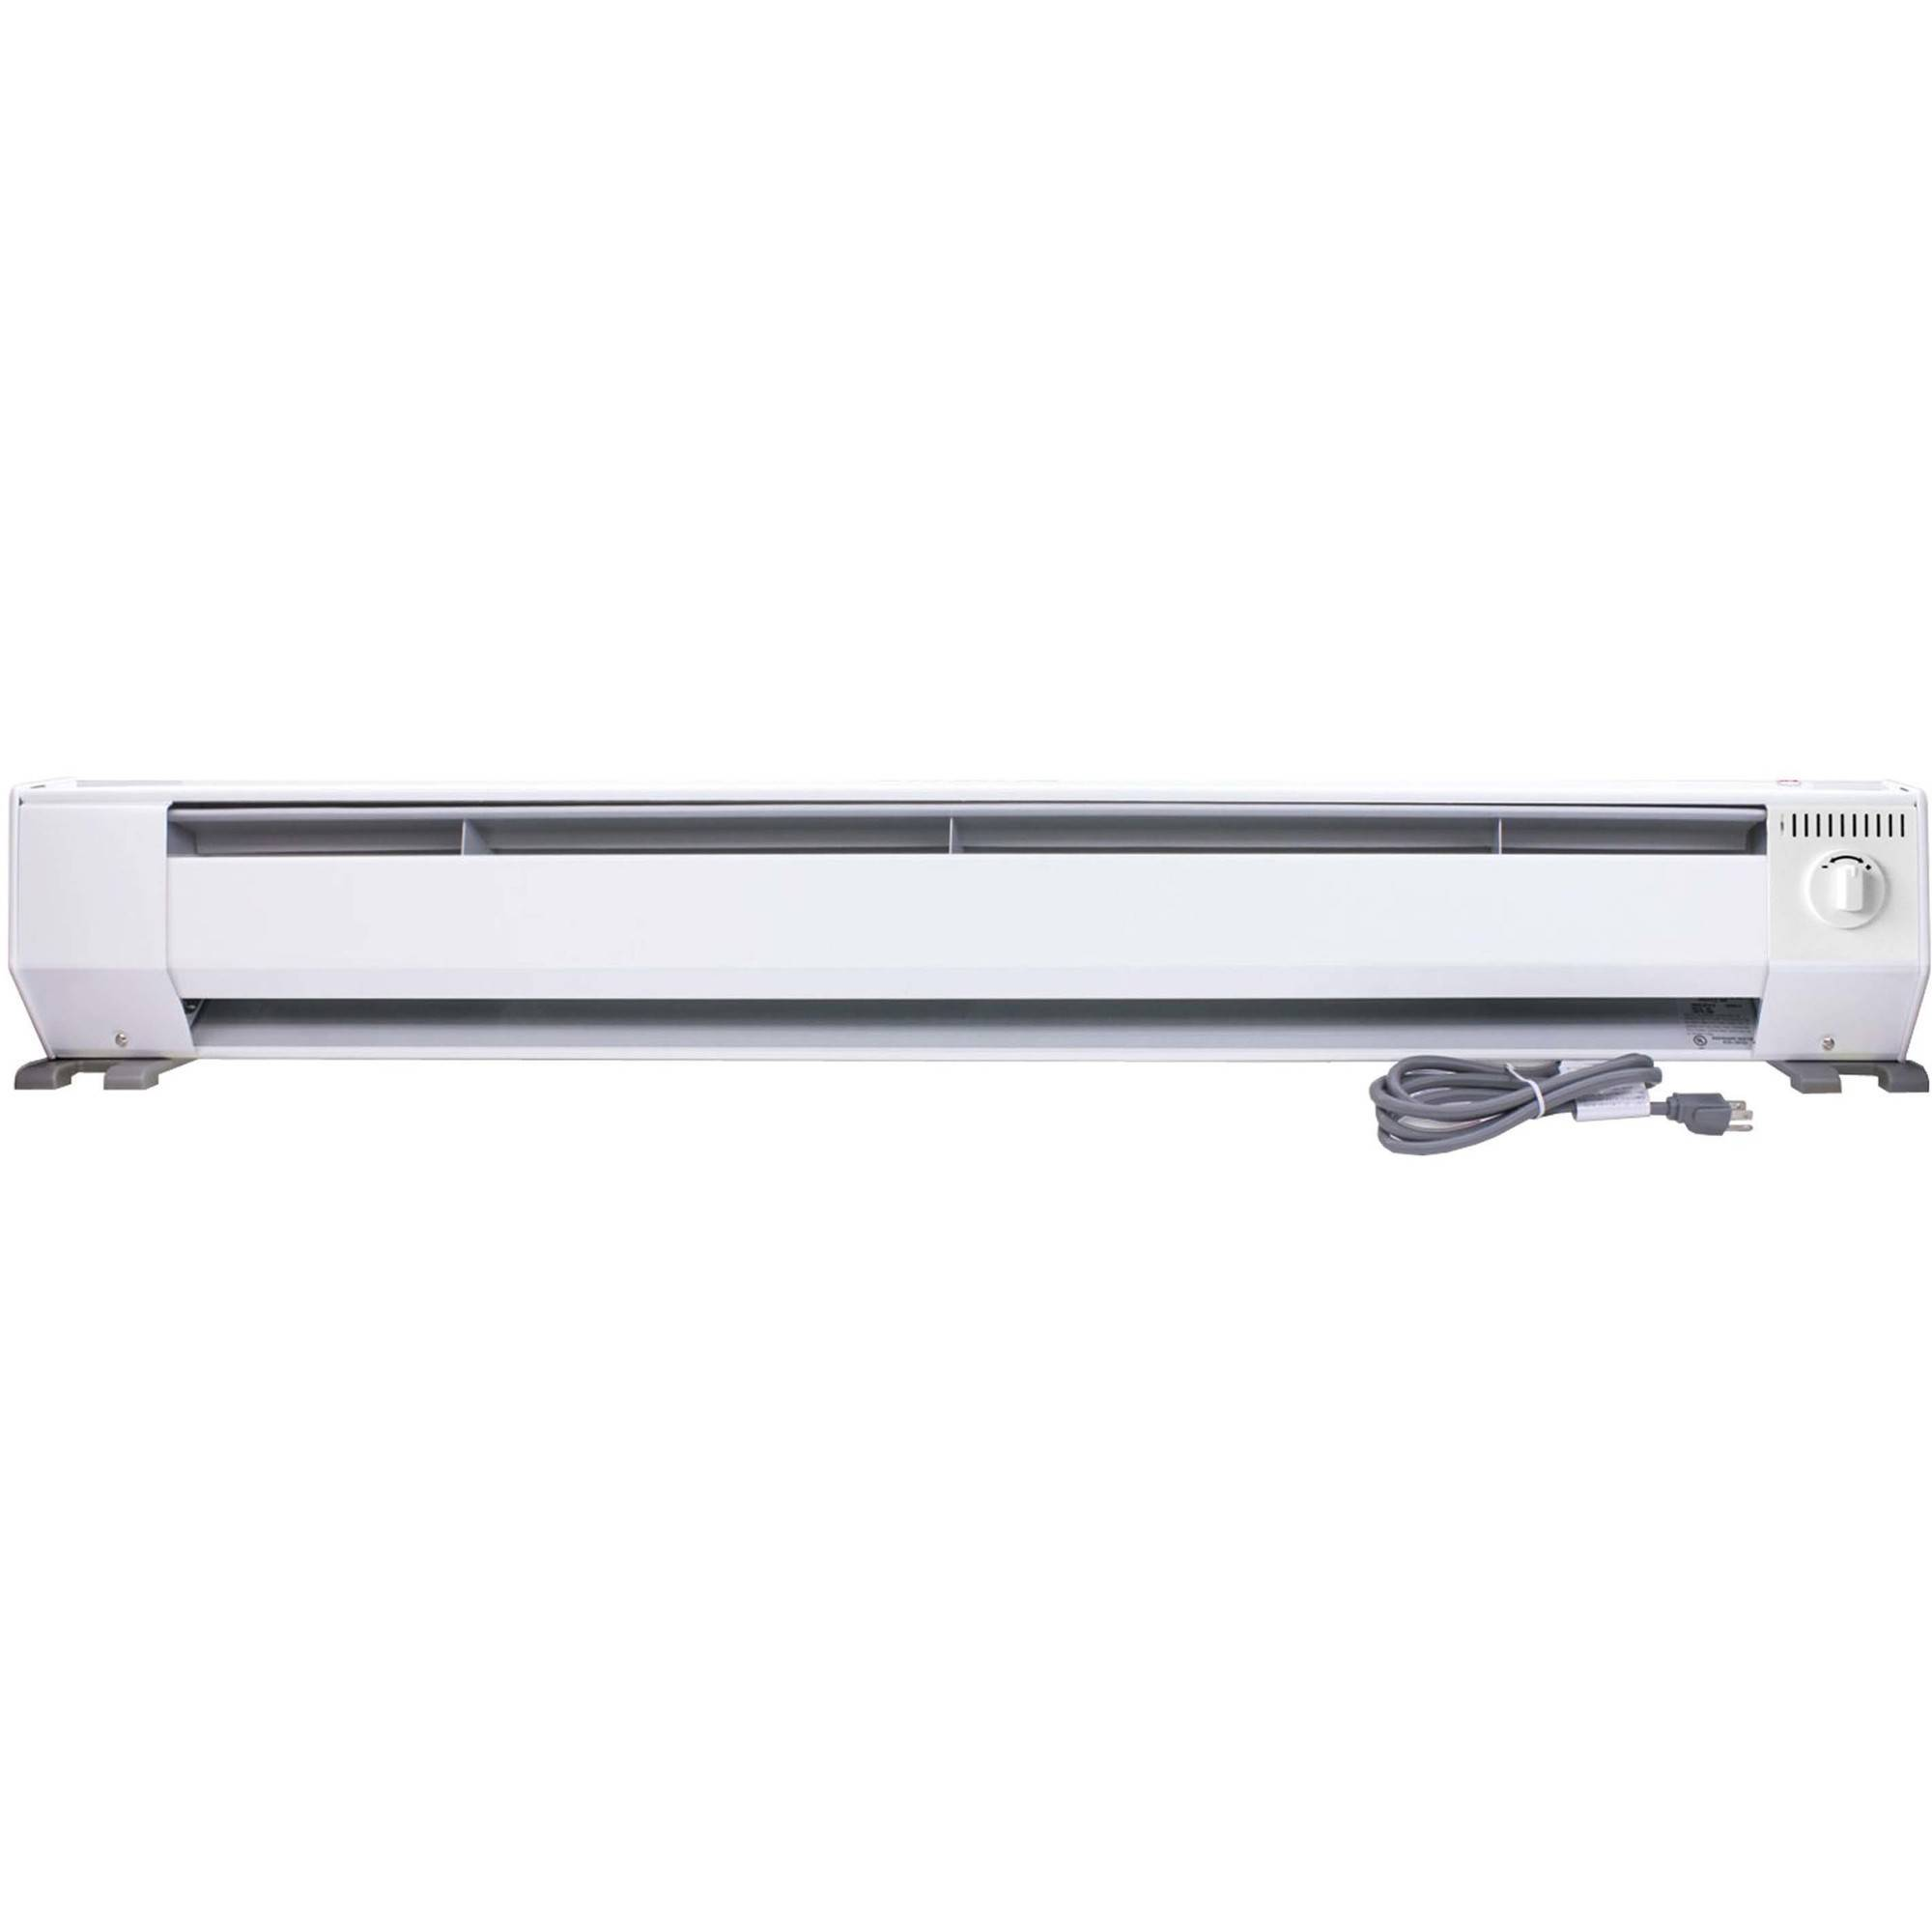 Dimplex Pc6025w31 King 4 Portable Electric Baseboard Heater White